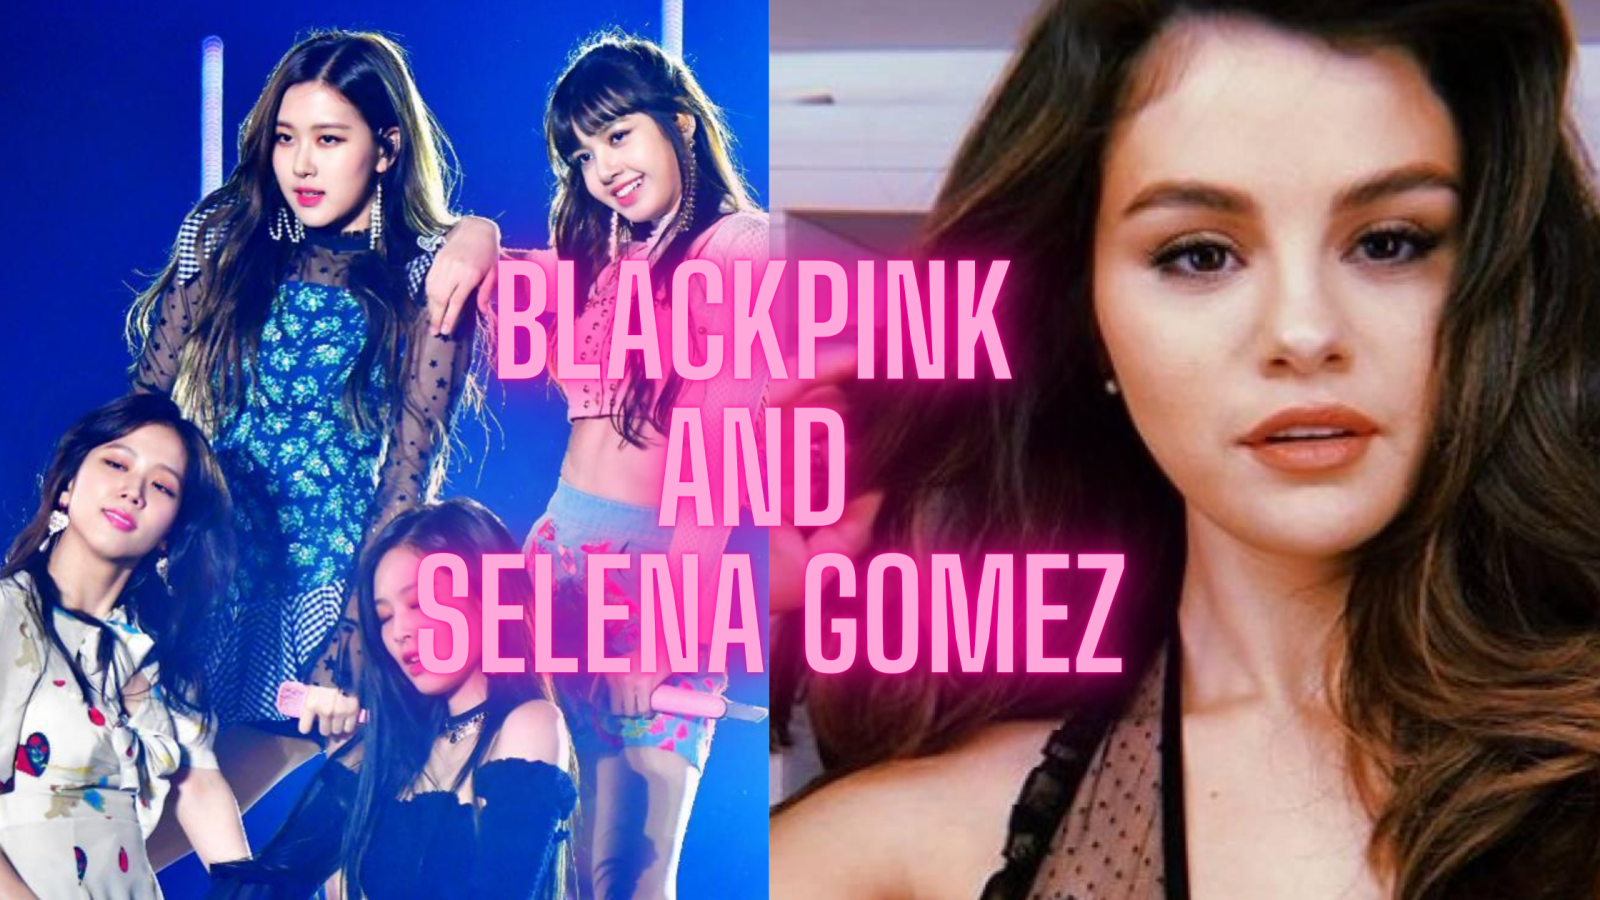 BlackPink will collab with Selena Gomez in August